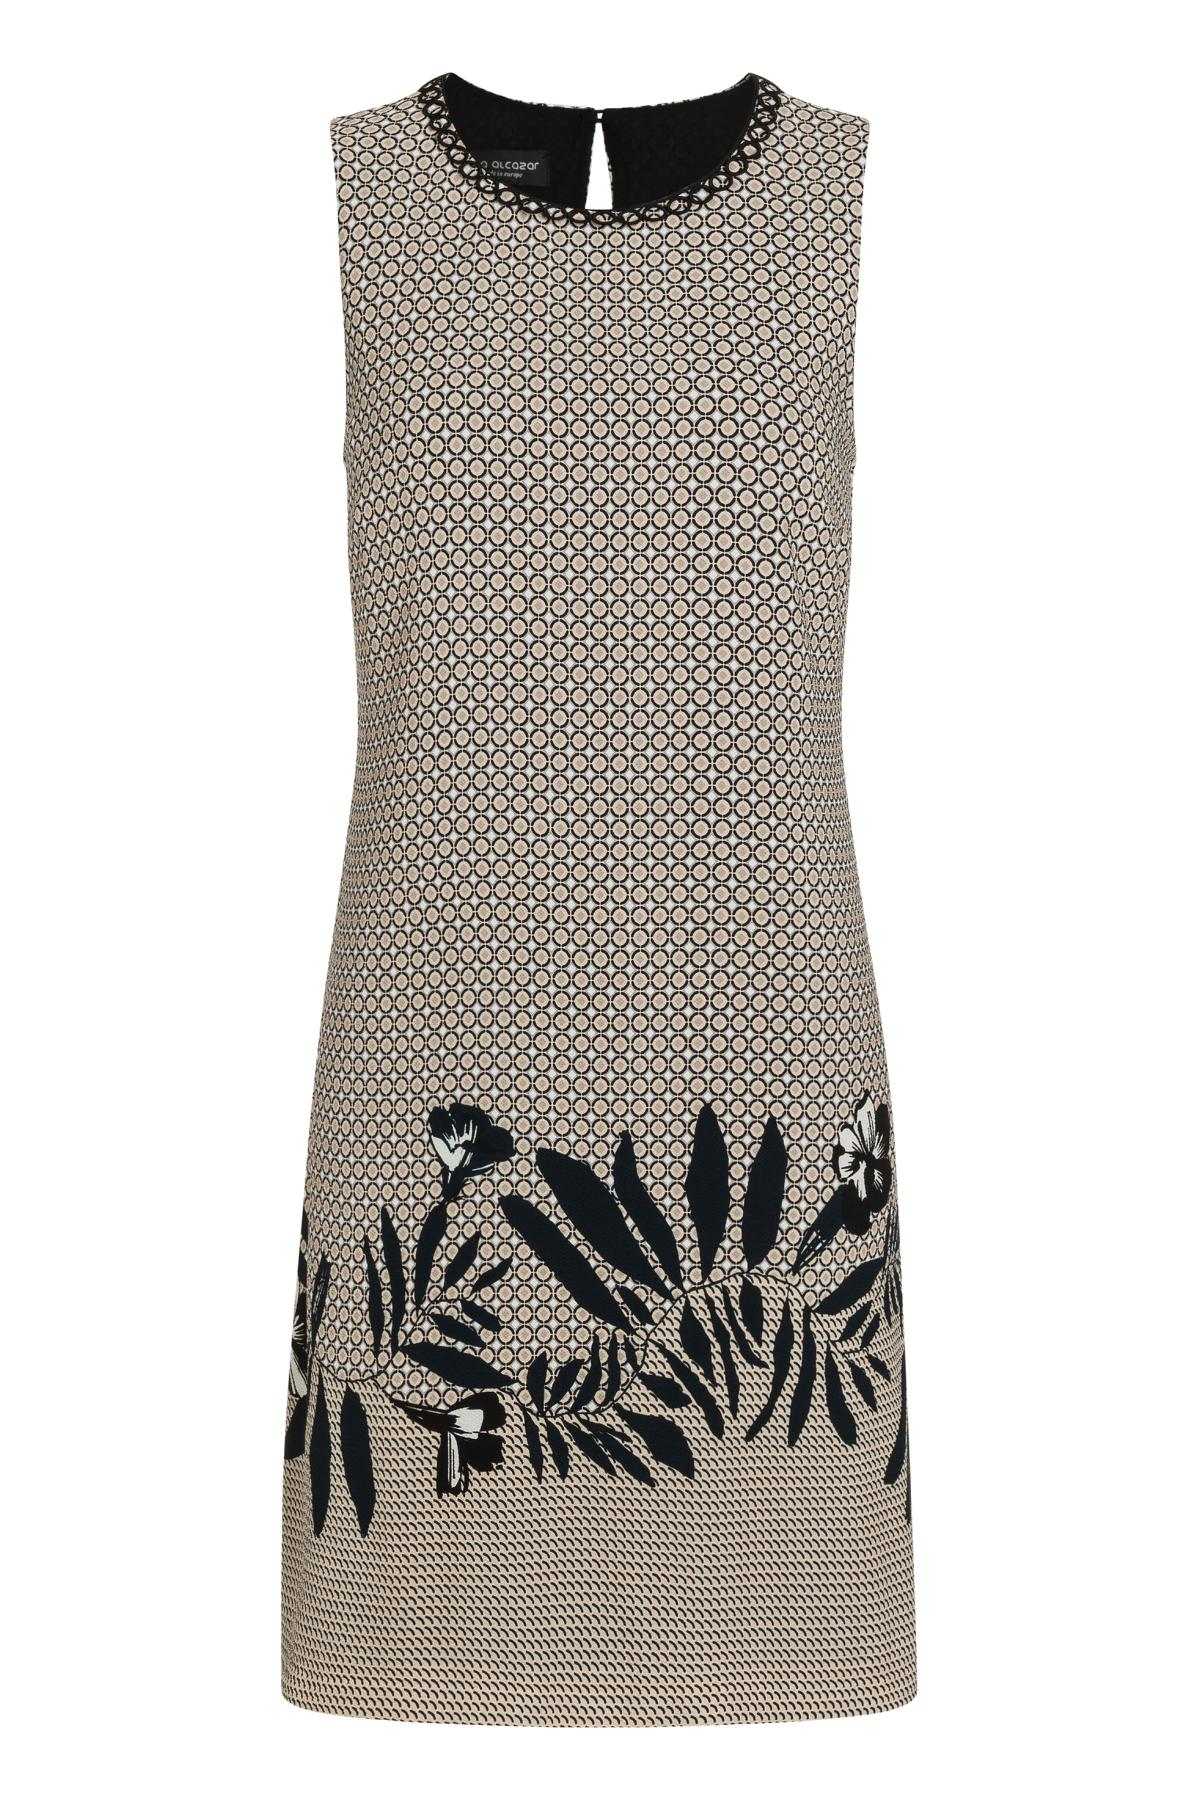 Ana Alcazar Sleeveless Dress Sedoni